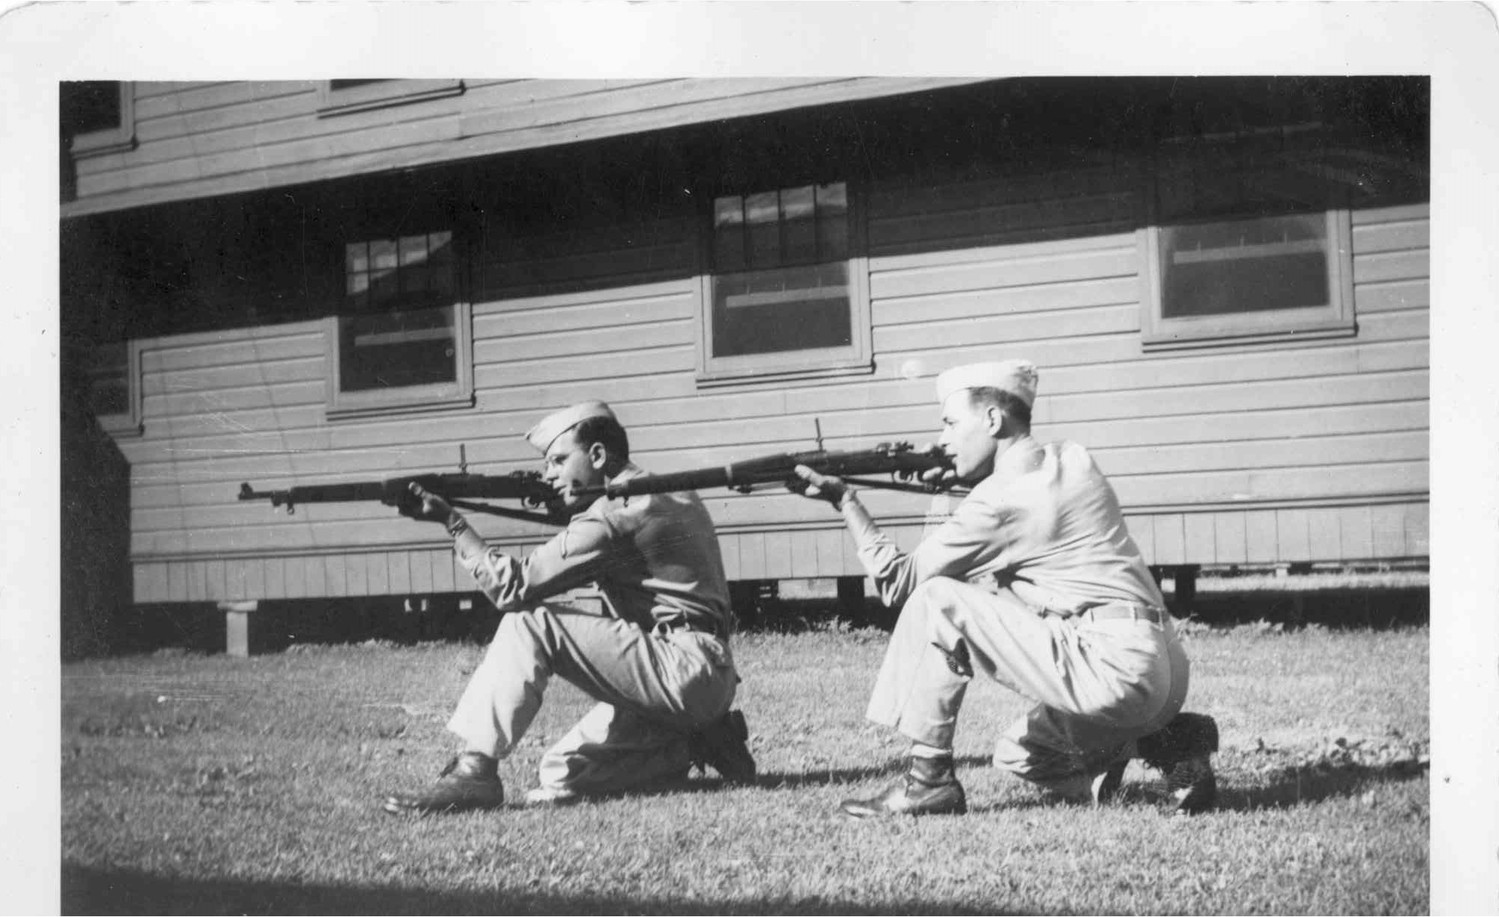 Hayes Jr. and a fellow soldier training prior to deployment, firing rifles.